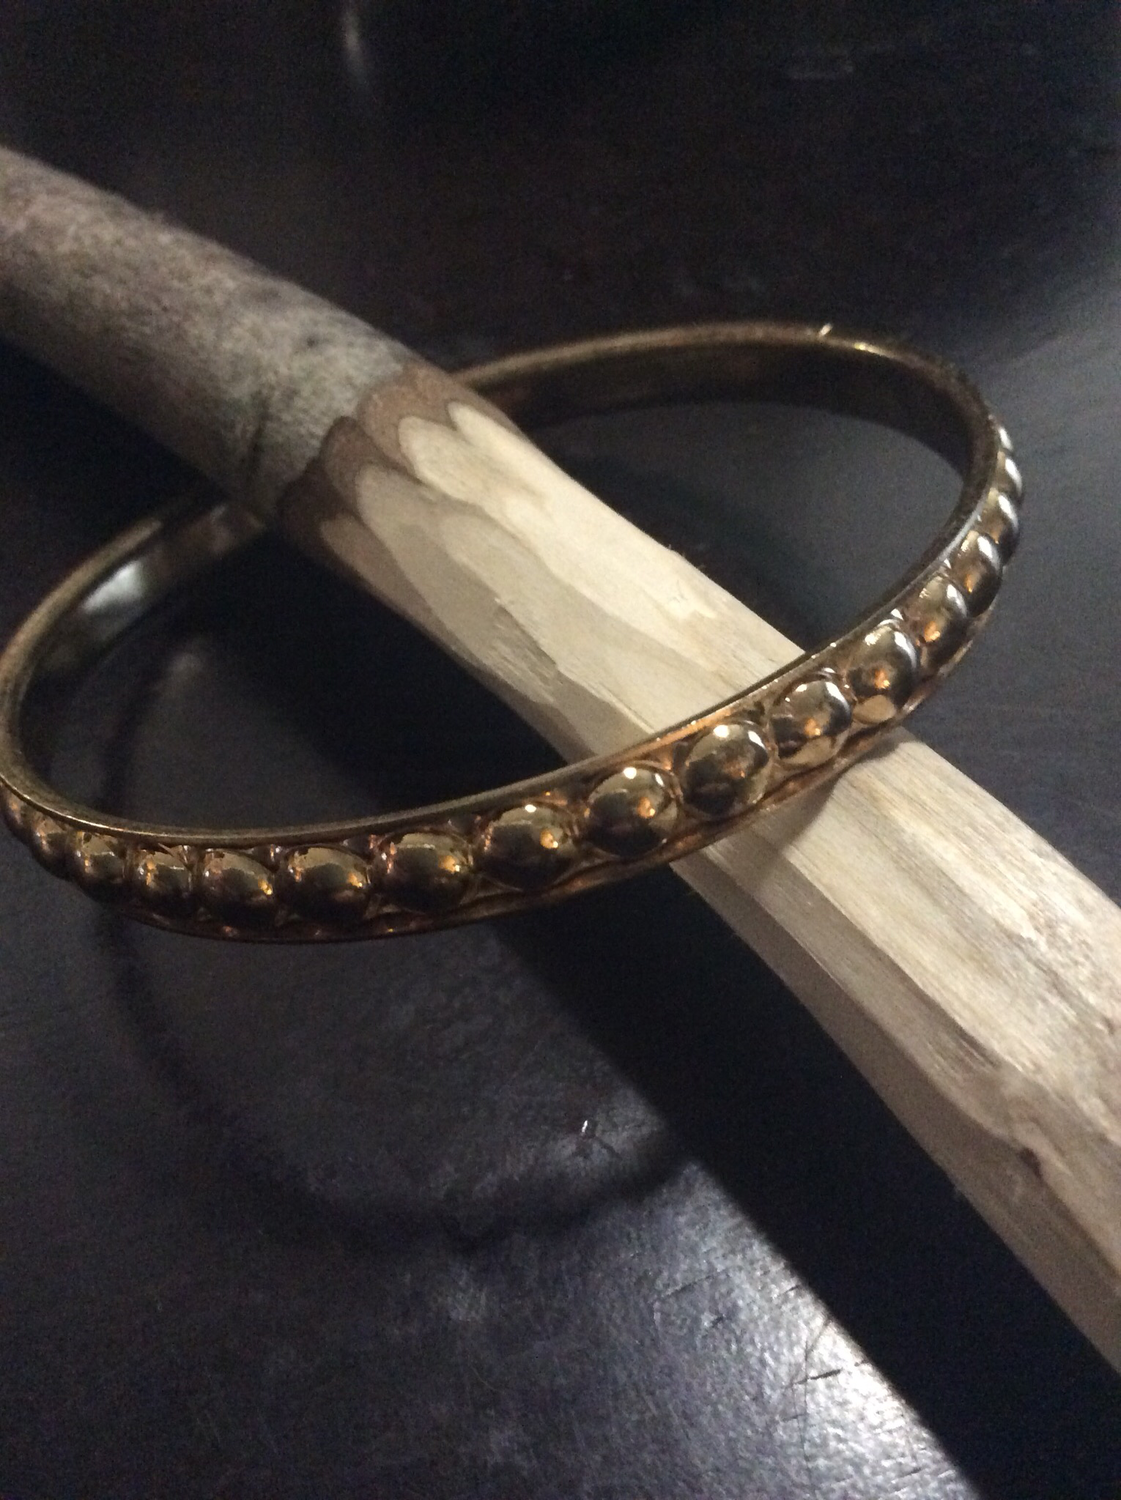 Bracelet anoint with Tao principle of Wu Wei